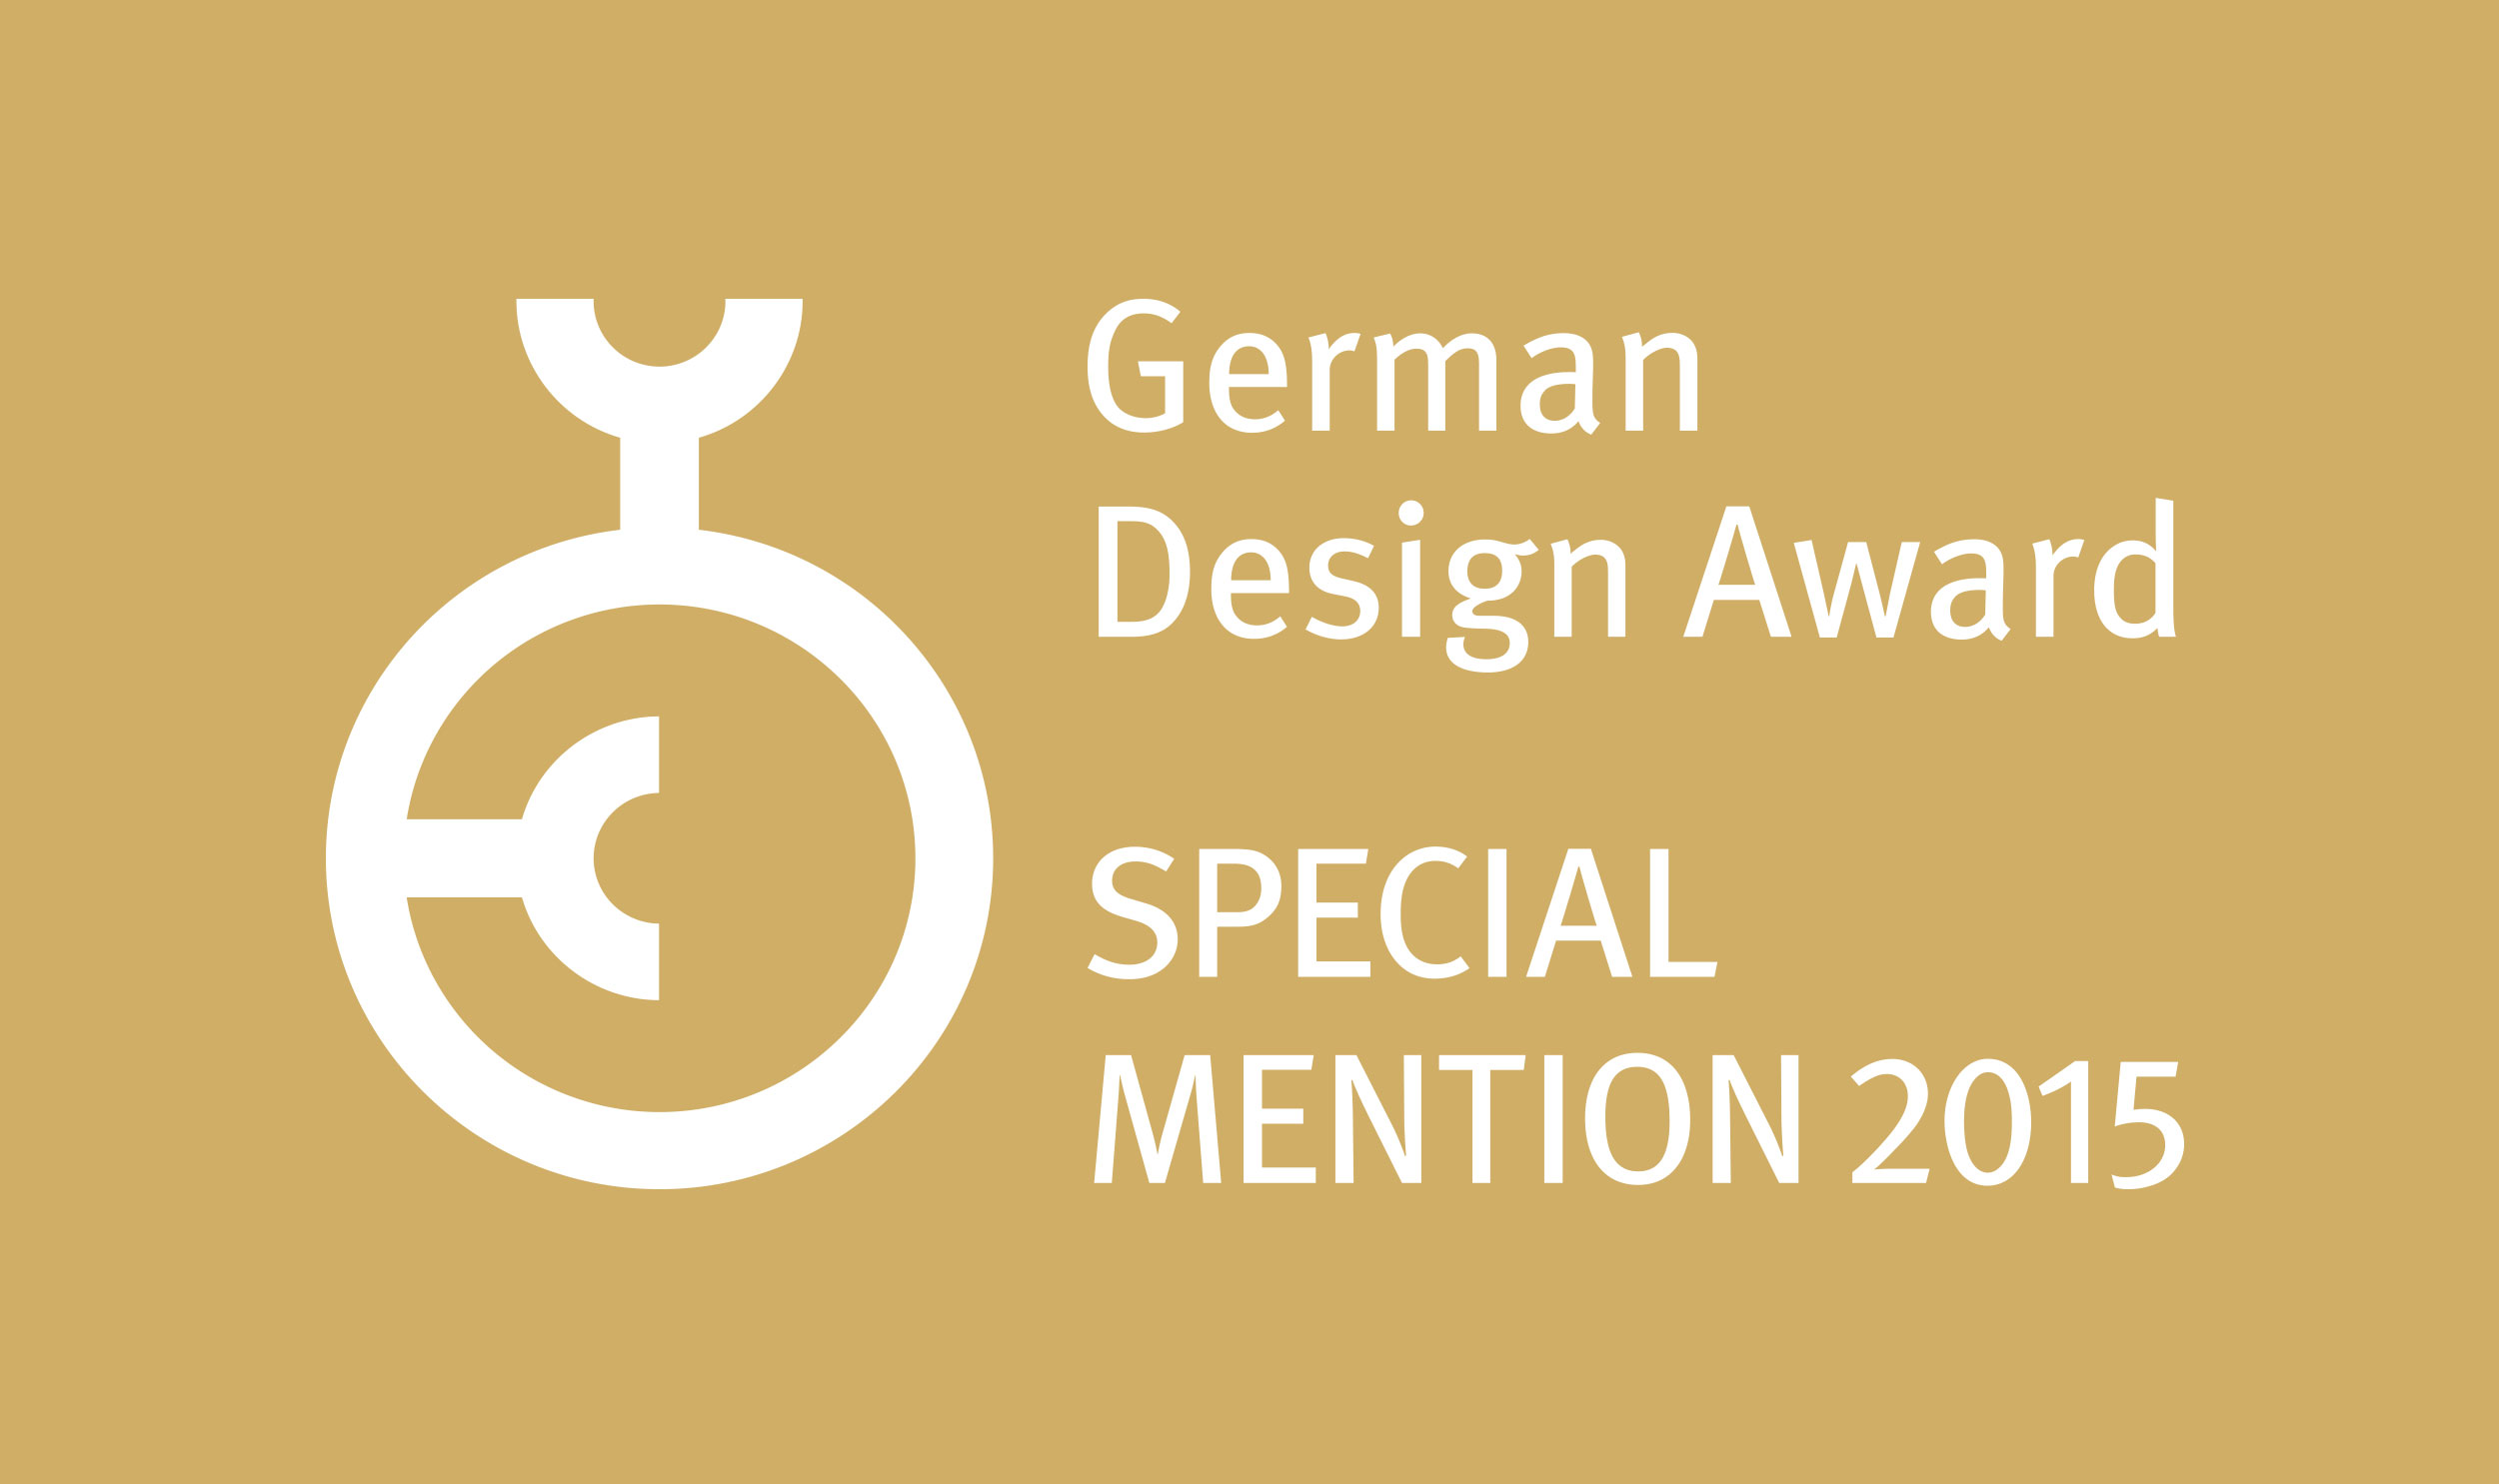 AWARD_German-Design-Award_2015_Special_Mention